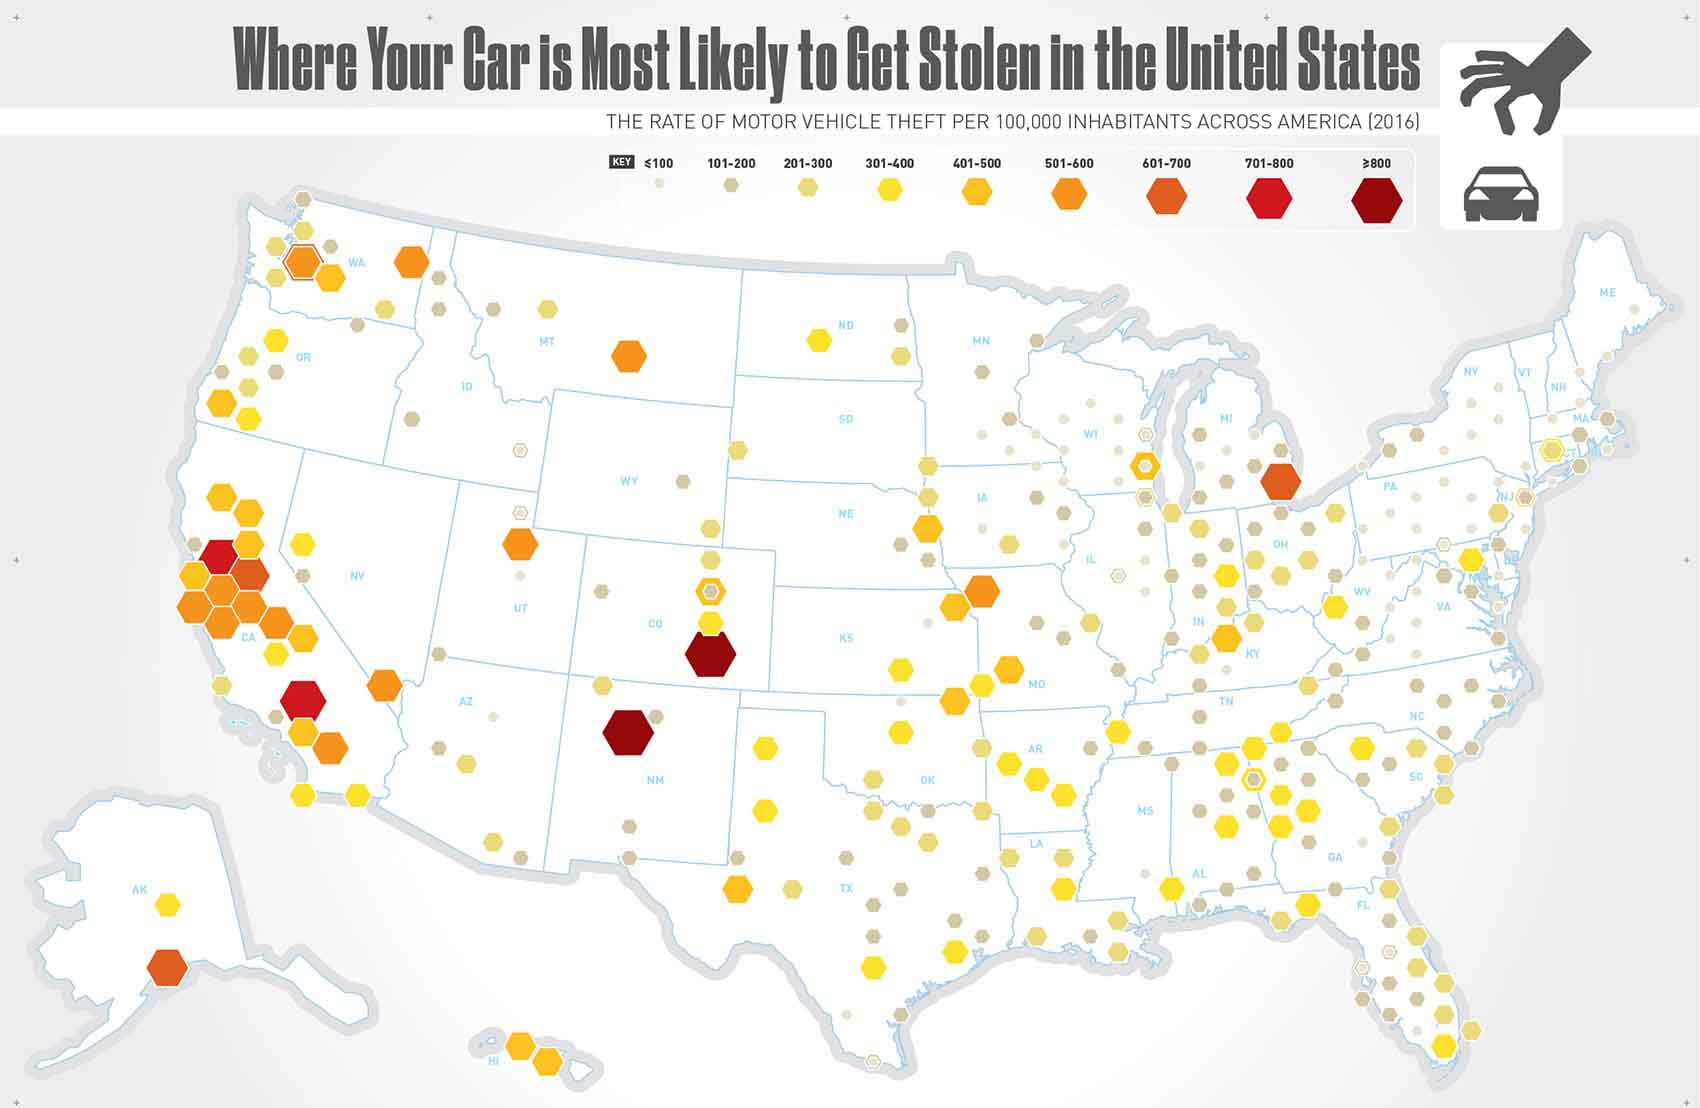 Where Your Car is Most Likely to Get Stolen in the U.S.